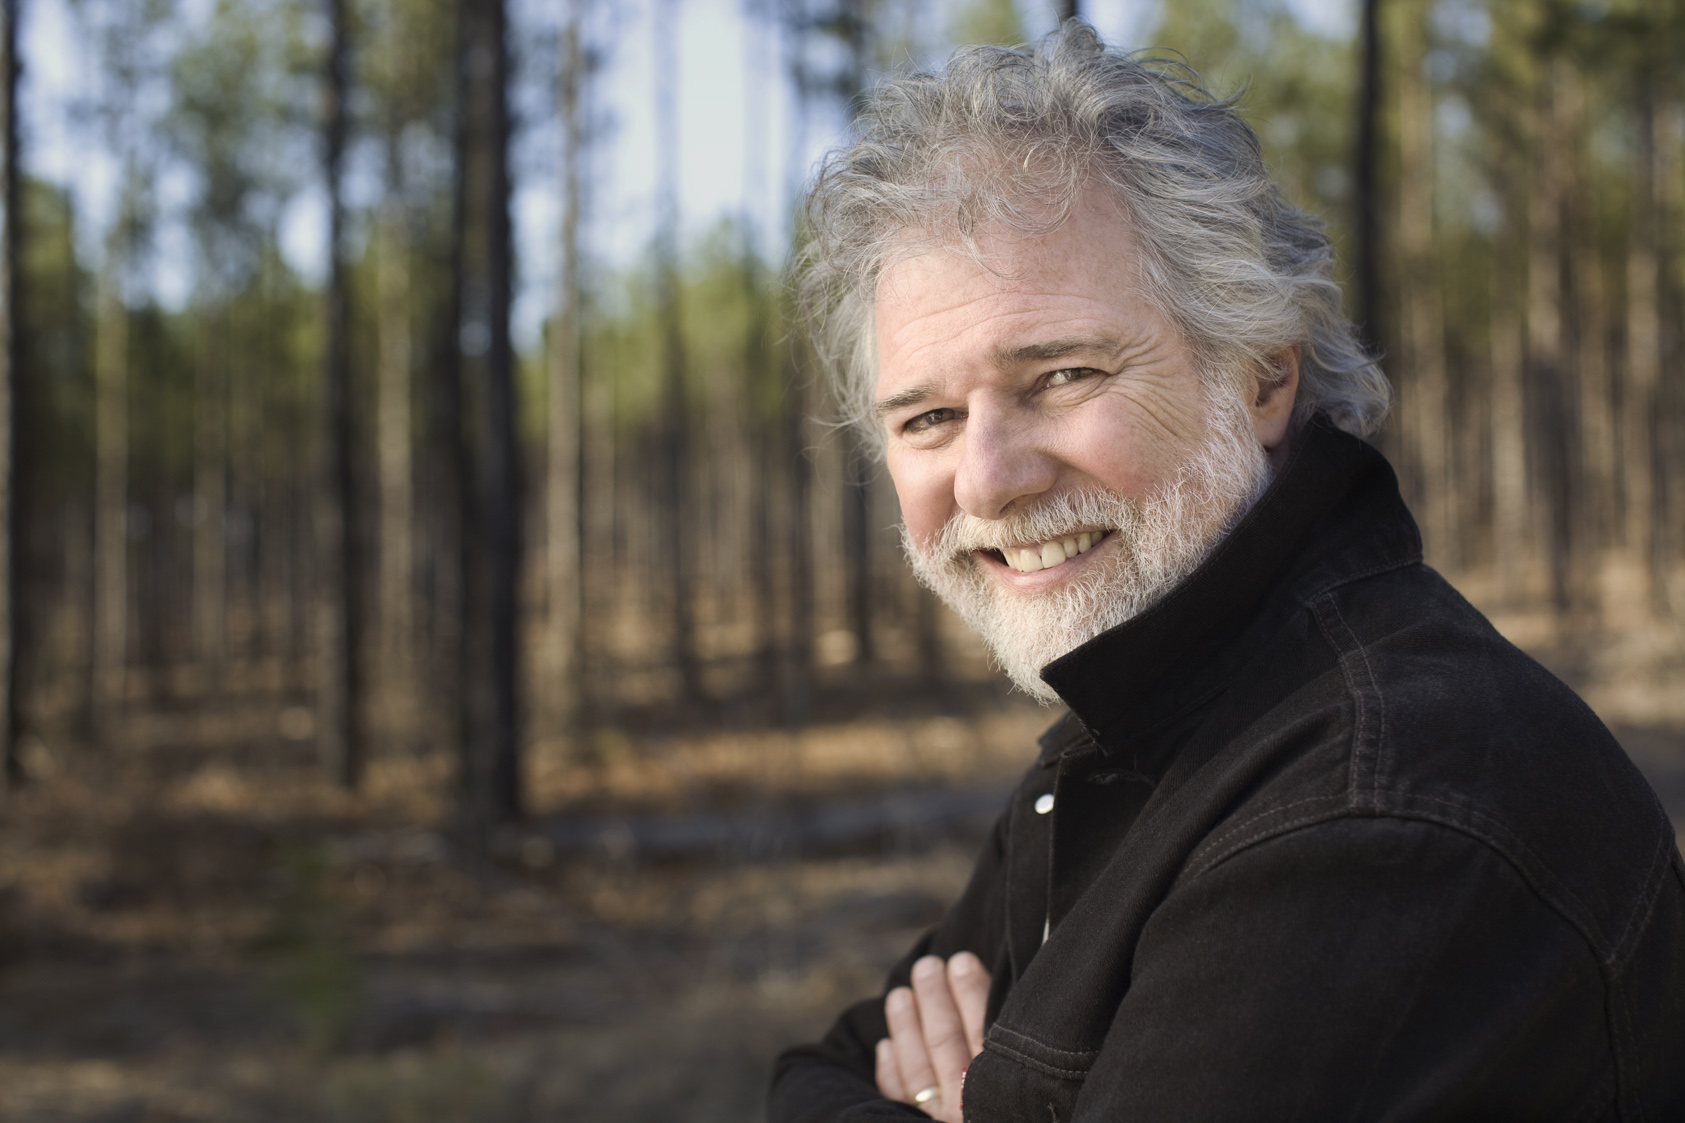 Chuck Leavell: The Magic of Finger Painting